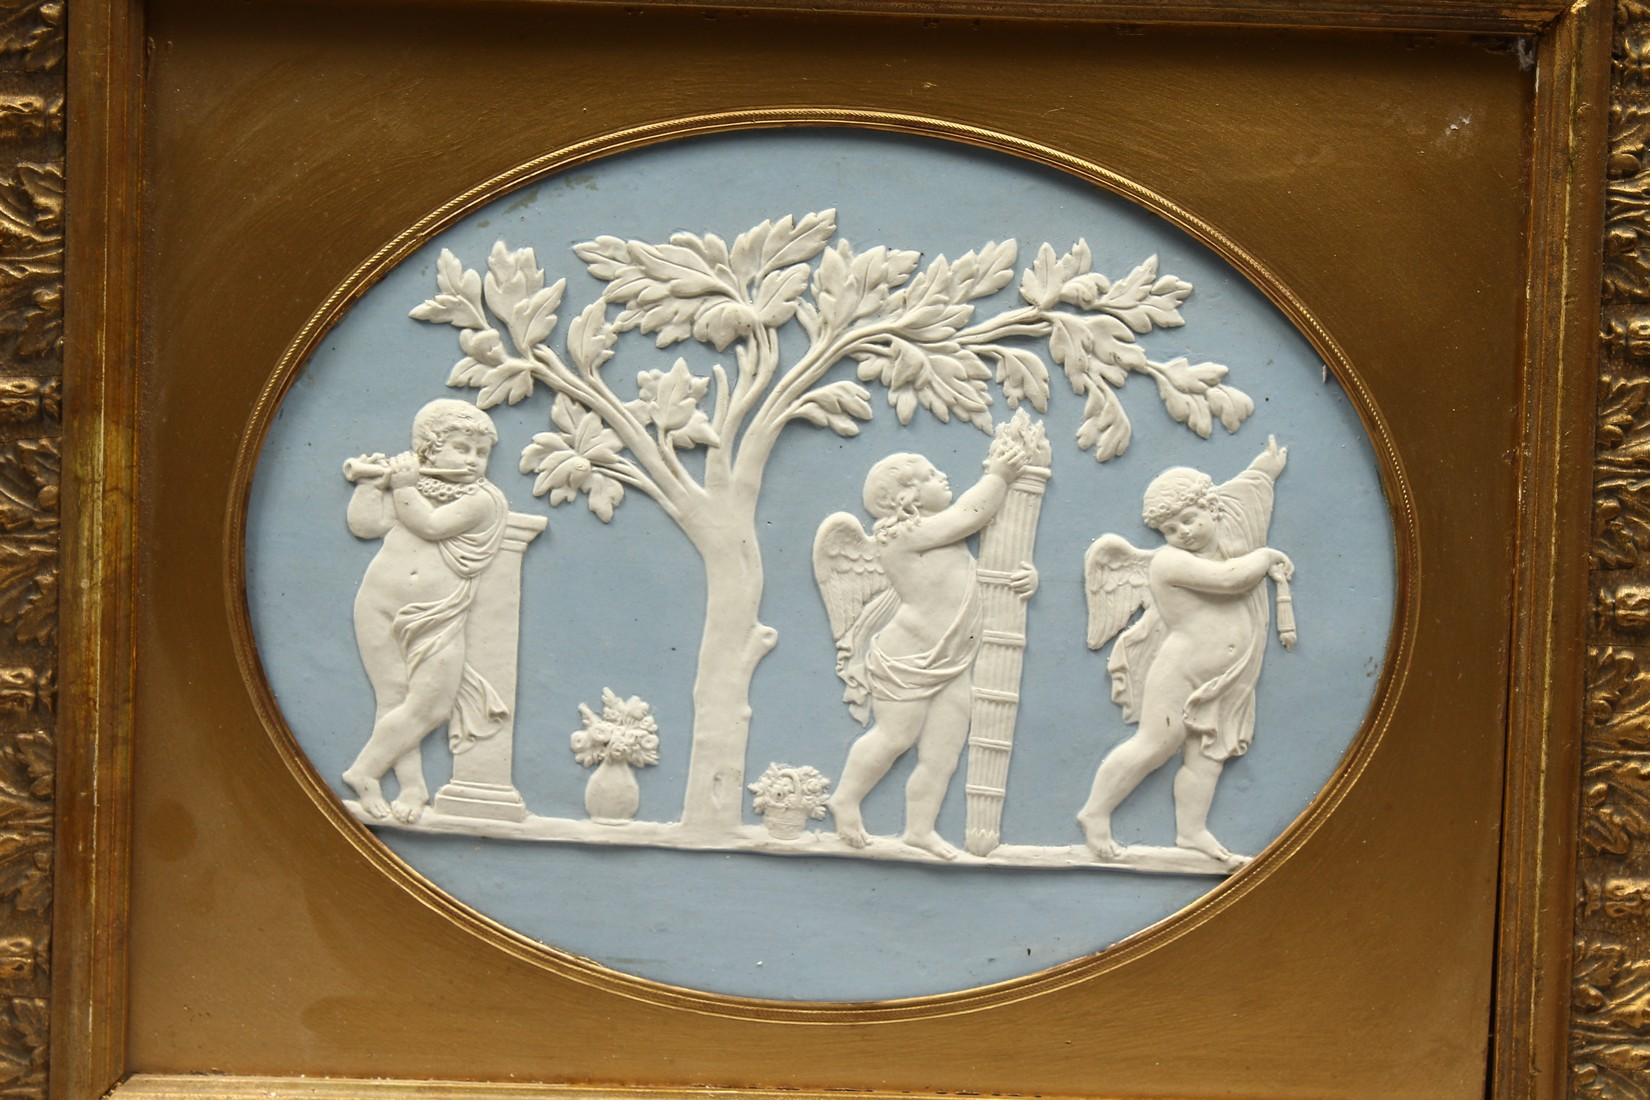 A WEDGWOOD BLUE AND WHITE GILT FRAMED PORCELAIN PLAQUE with cupids 6ins and 8ins. - Image 2 of 3